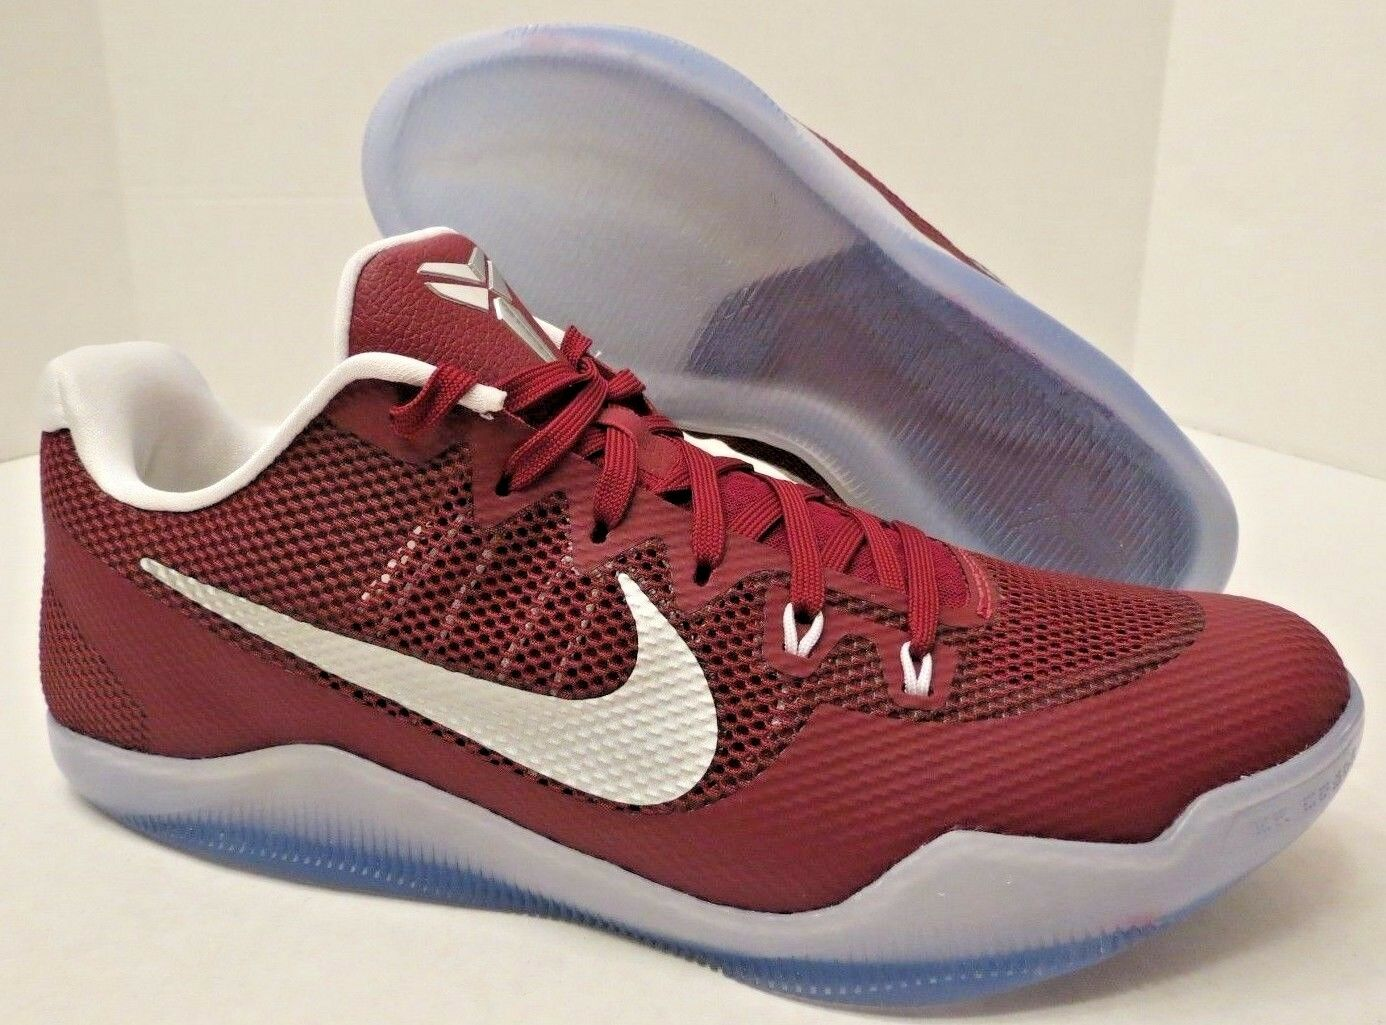 NIKE KOBE XI LOW BASKETBALL SHOES 856485 662 DK RED-ICY WHITE (MENS 13.5) NO BOX